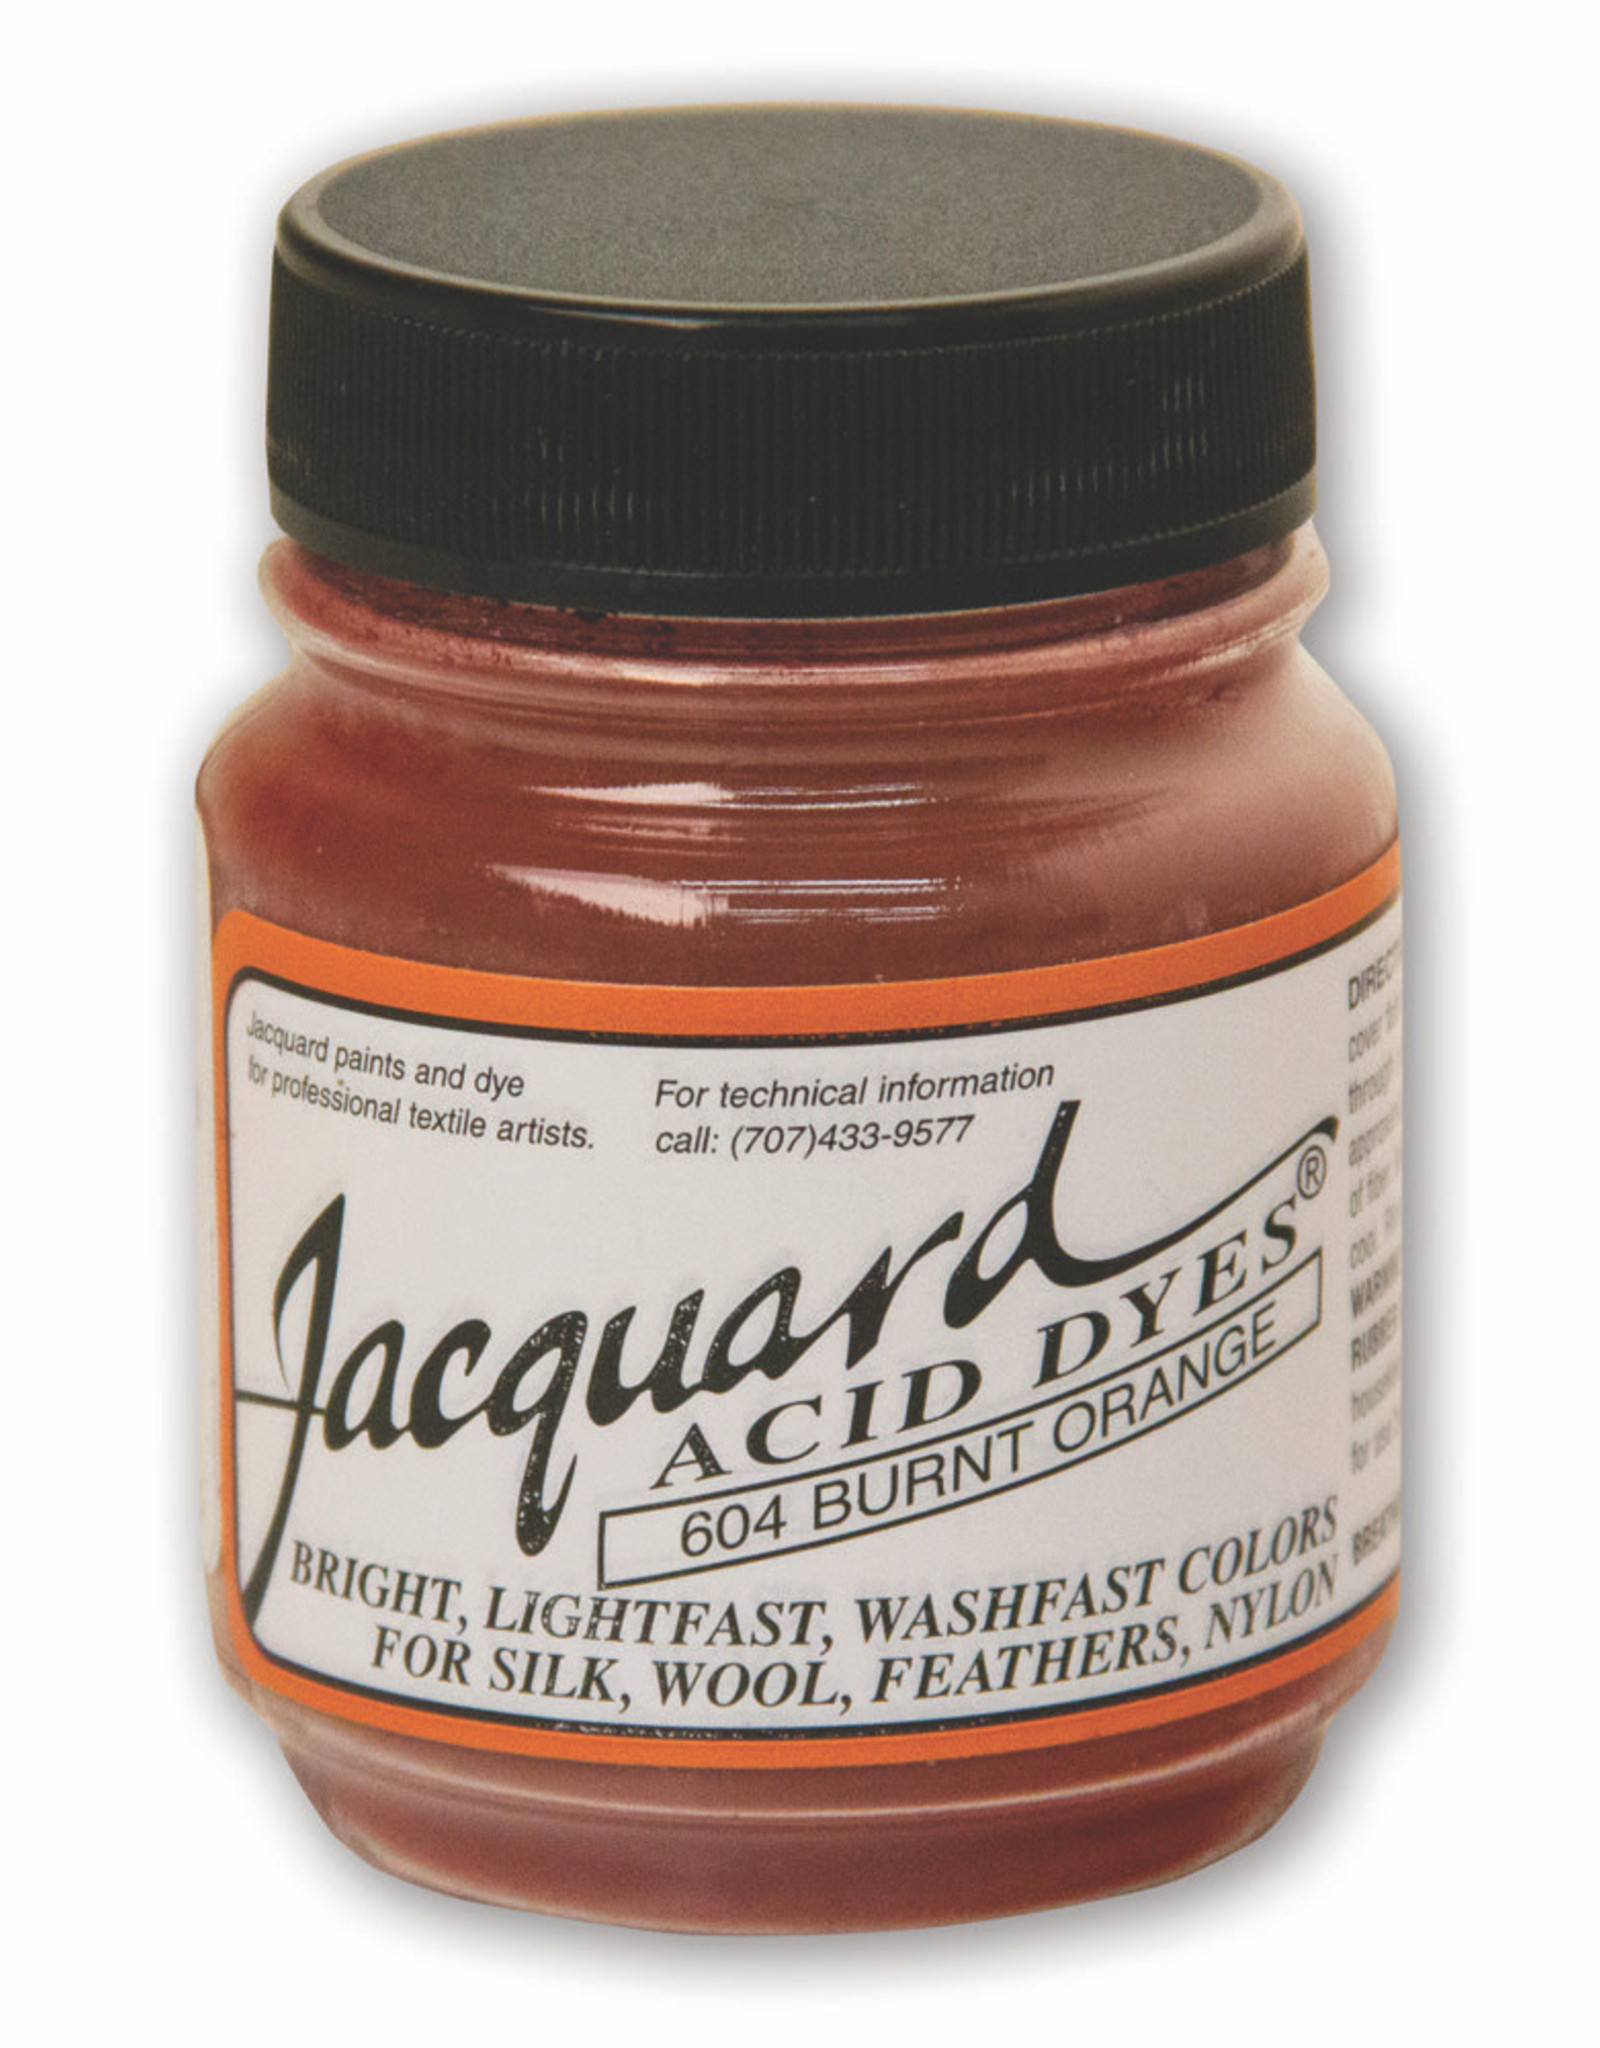 Jacquard Jacquard Acid Dye #604 Burnt Orange 1/2oz